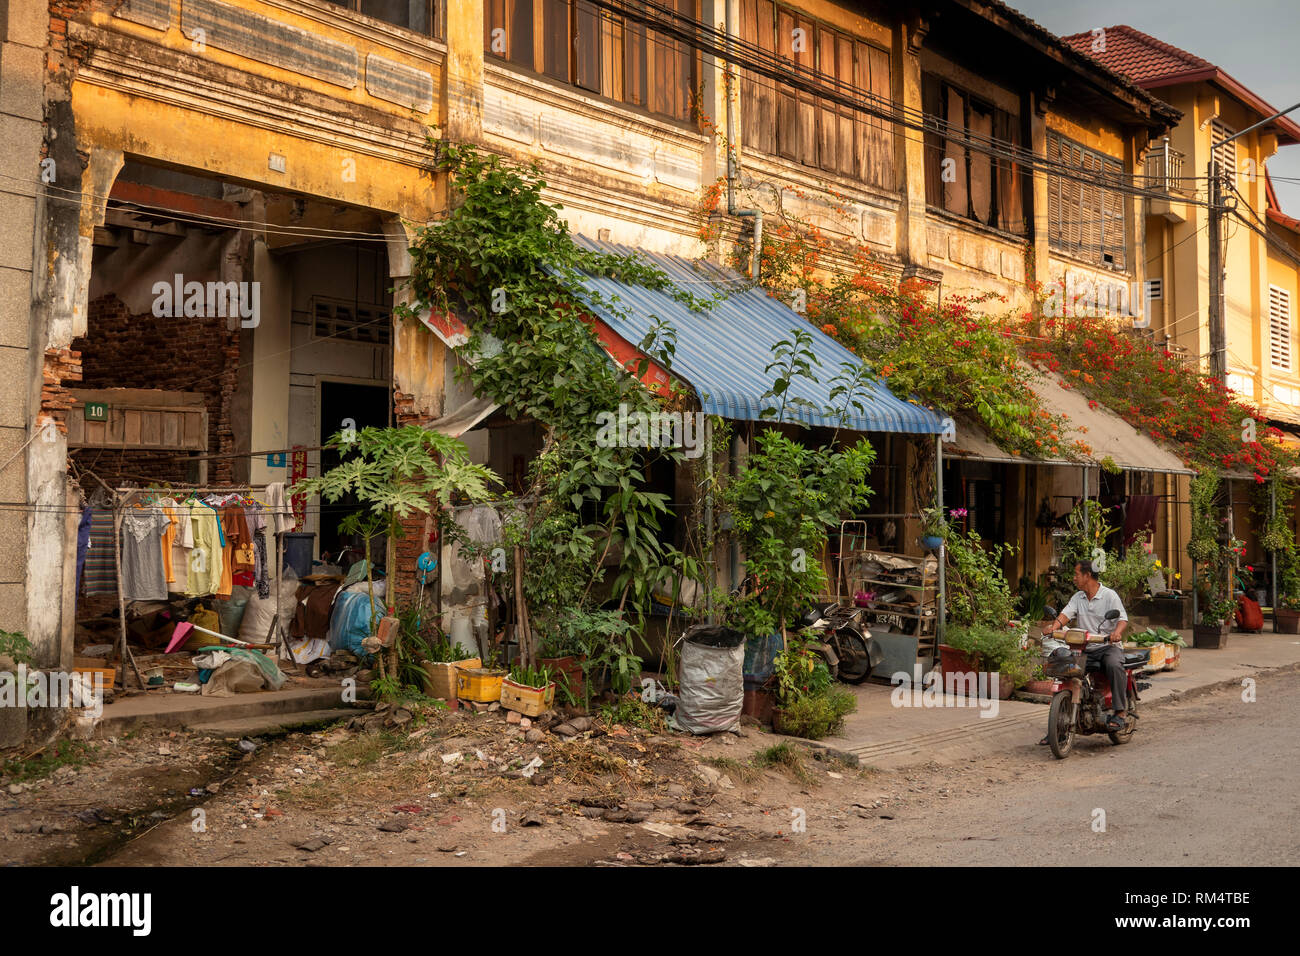 Cambodia, Kampot Province, Kampot city, Street 703, unrestored decaying old French colonial buildings inOld Market area - Stock Image